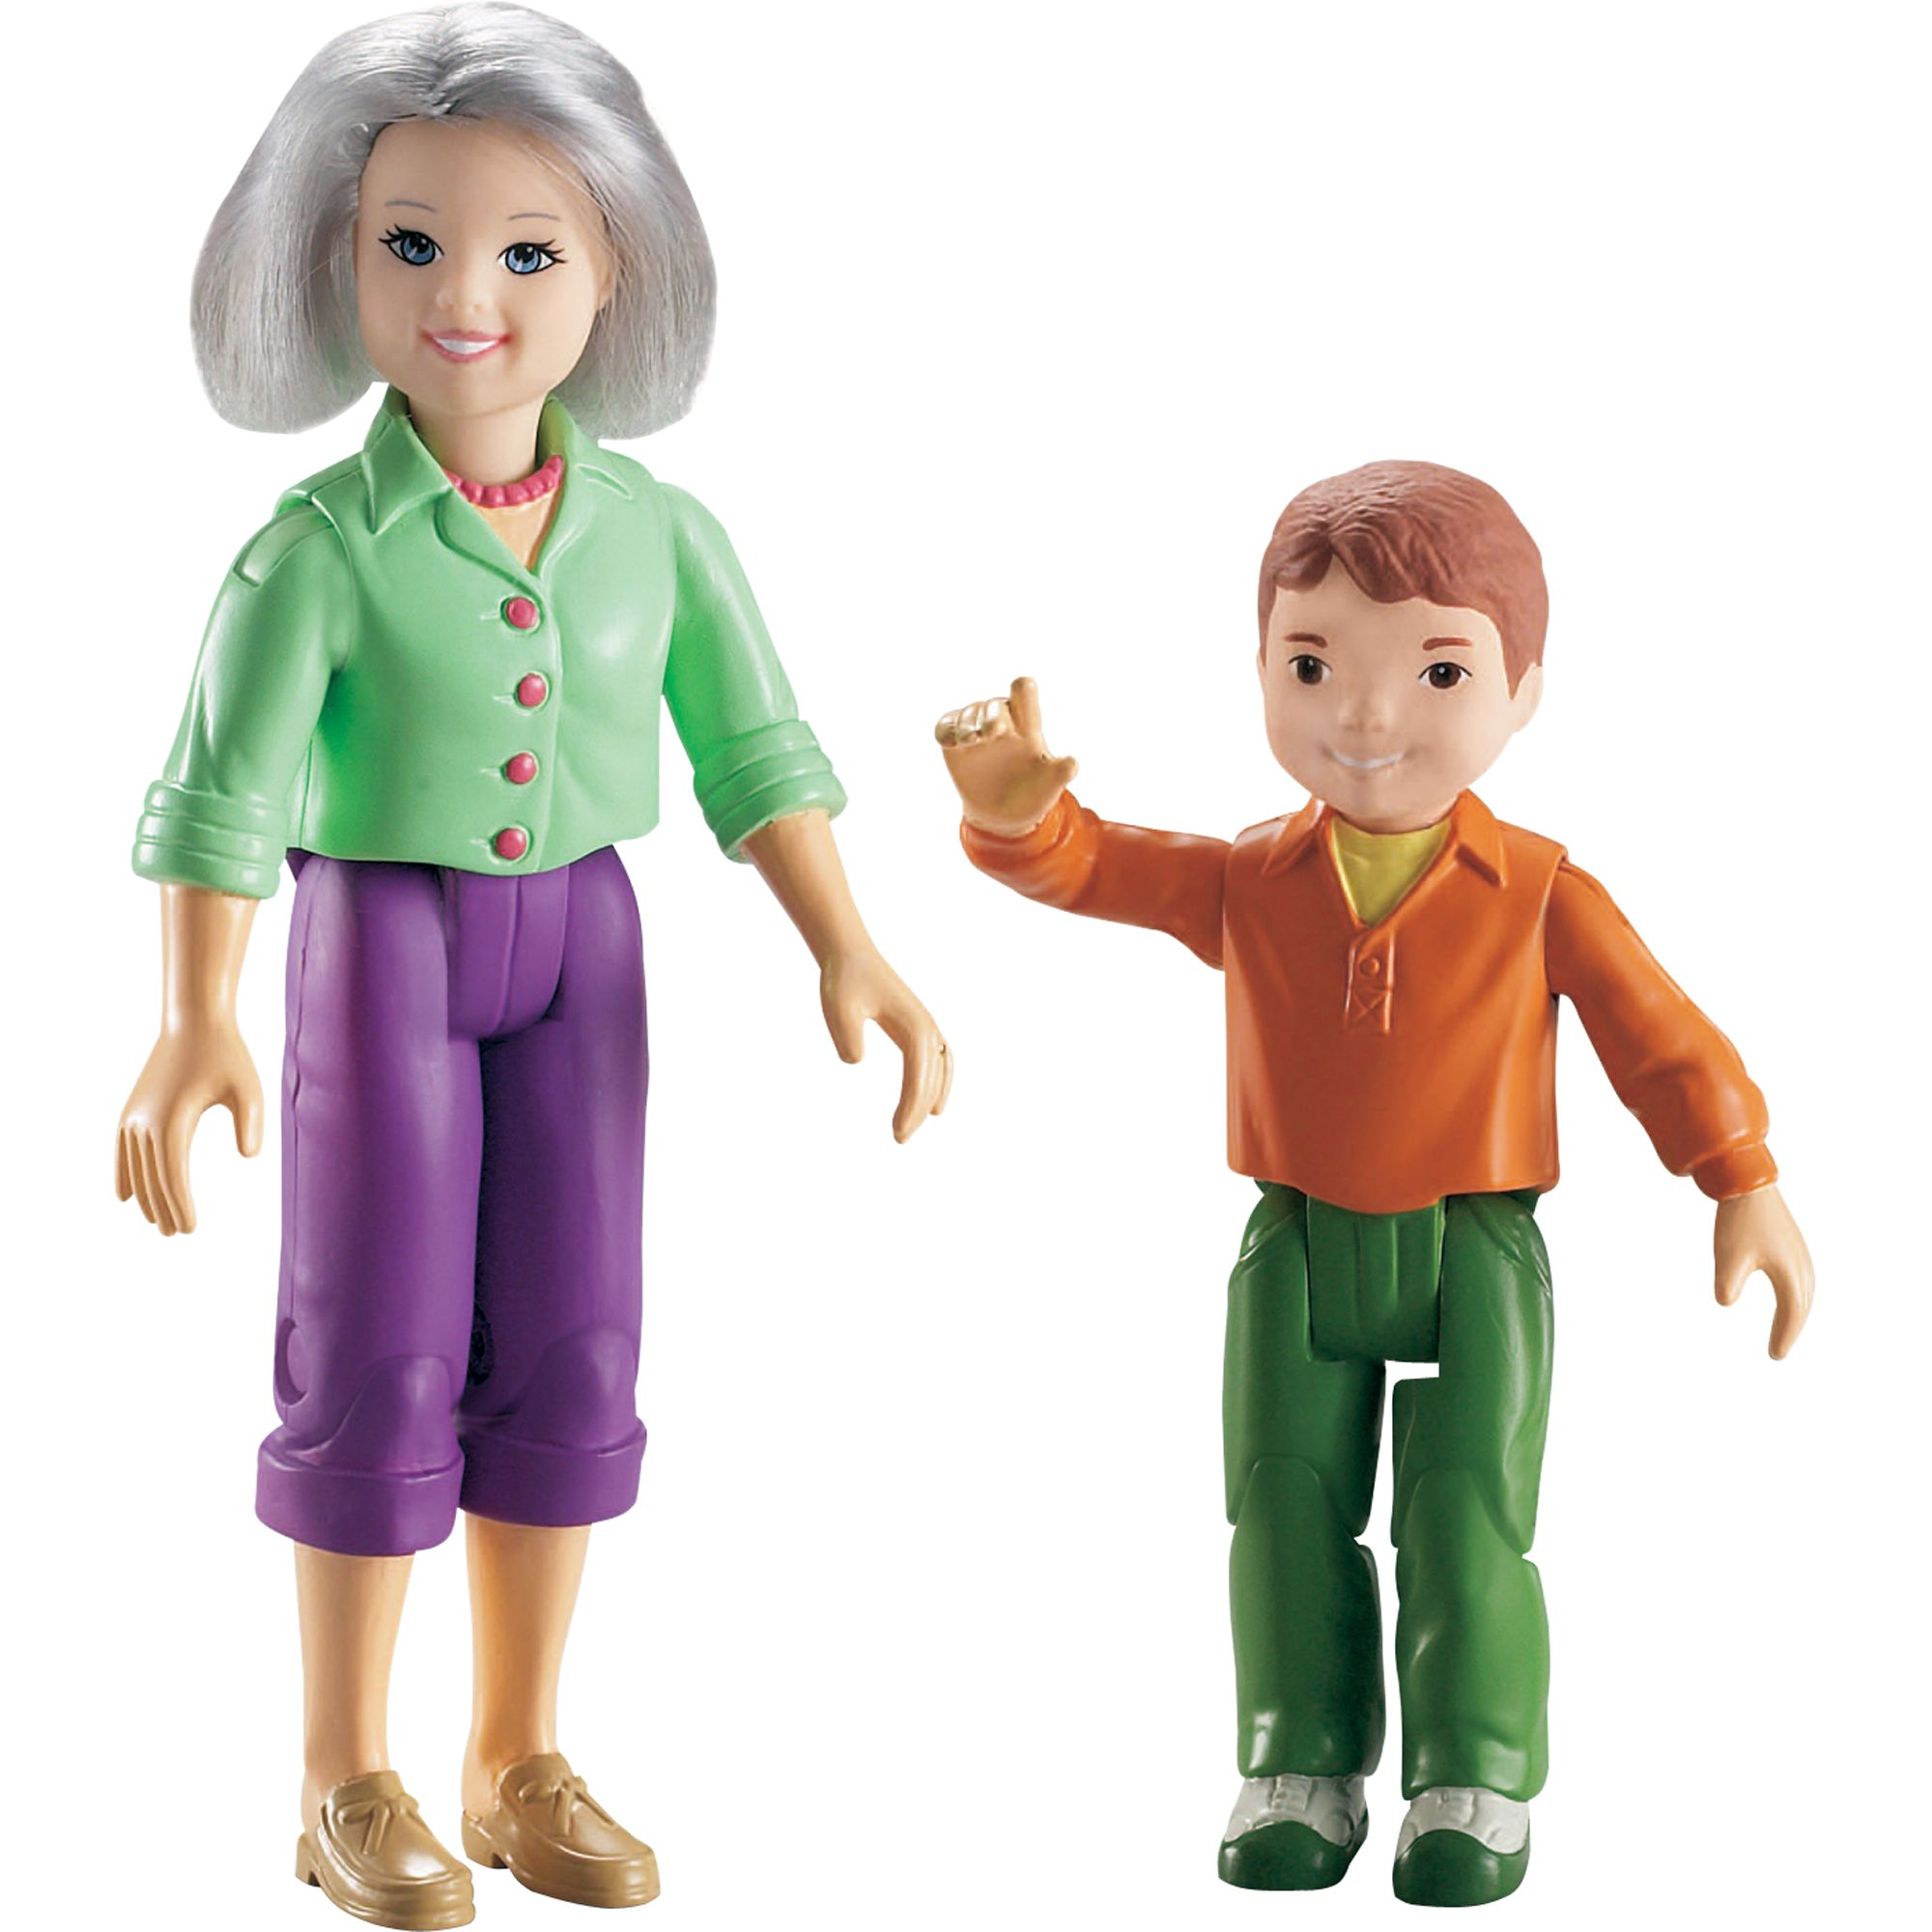 Loving Family Fisher-Price Loving Family Grandma and Brother Dolls PartNumber: 004W725444110001P